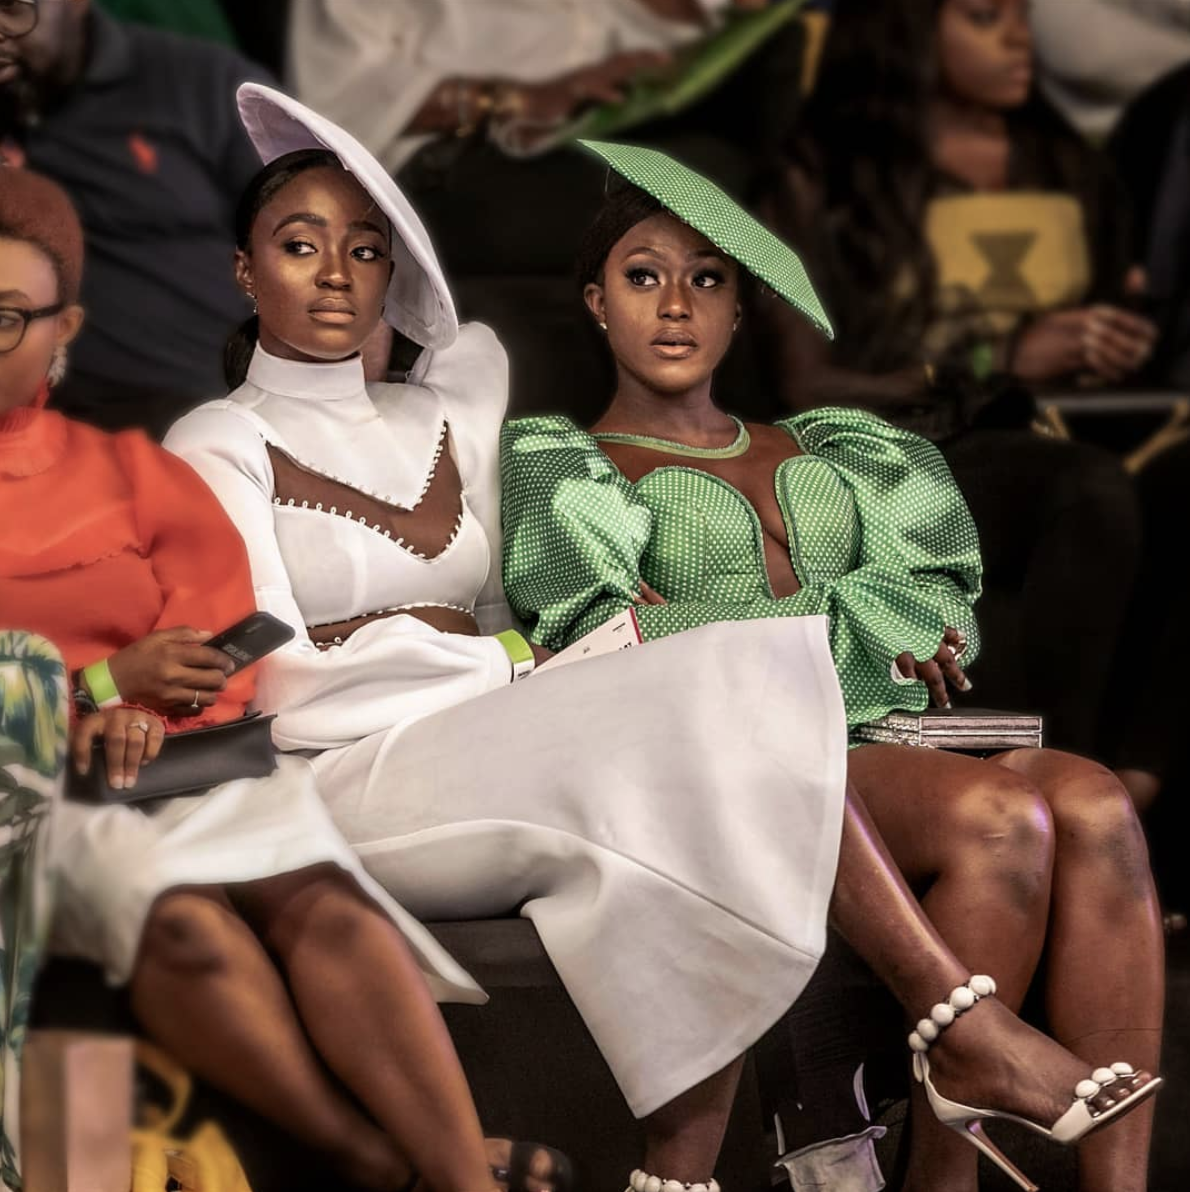 Denola Grey, Alex Unusual, Dazzle The Fayrouz X Green Access Runway Show At Lagos Fashion Week